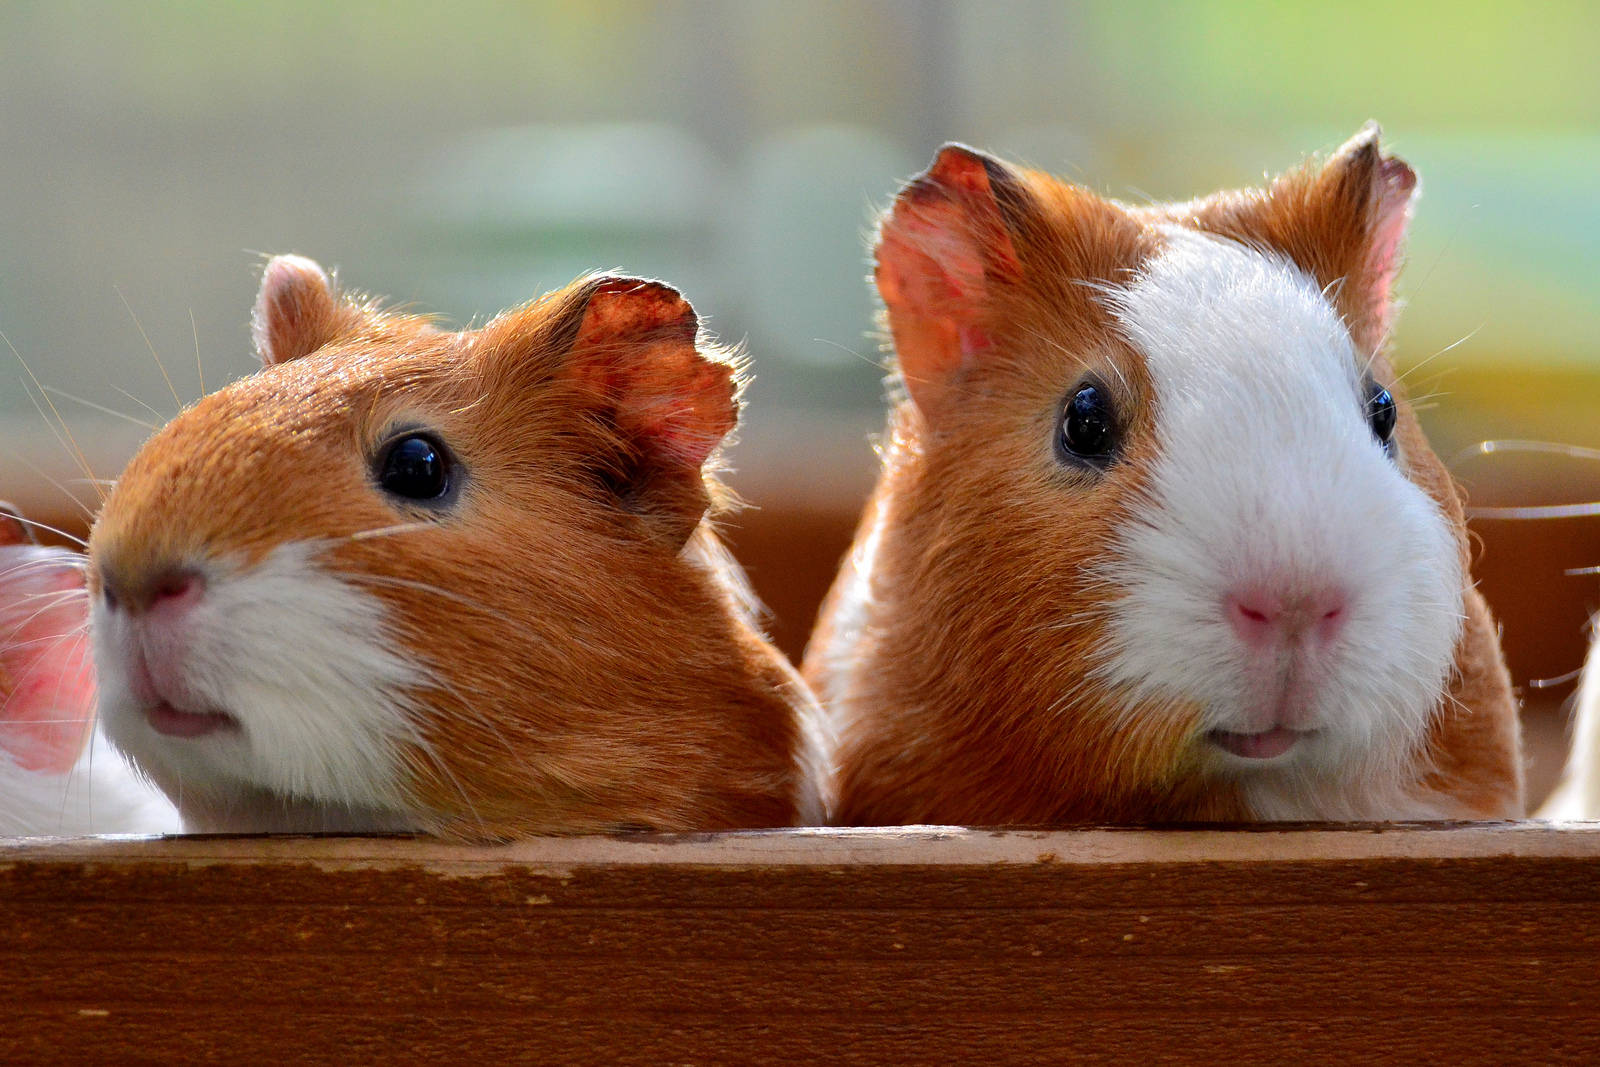 5 Important Things to Know Before Adopting a Guinea Pig